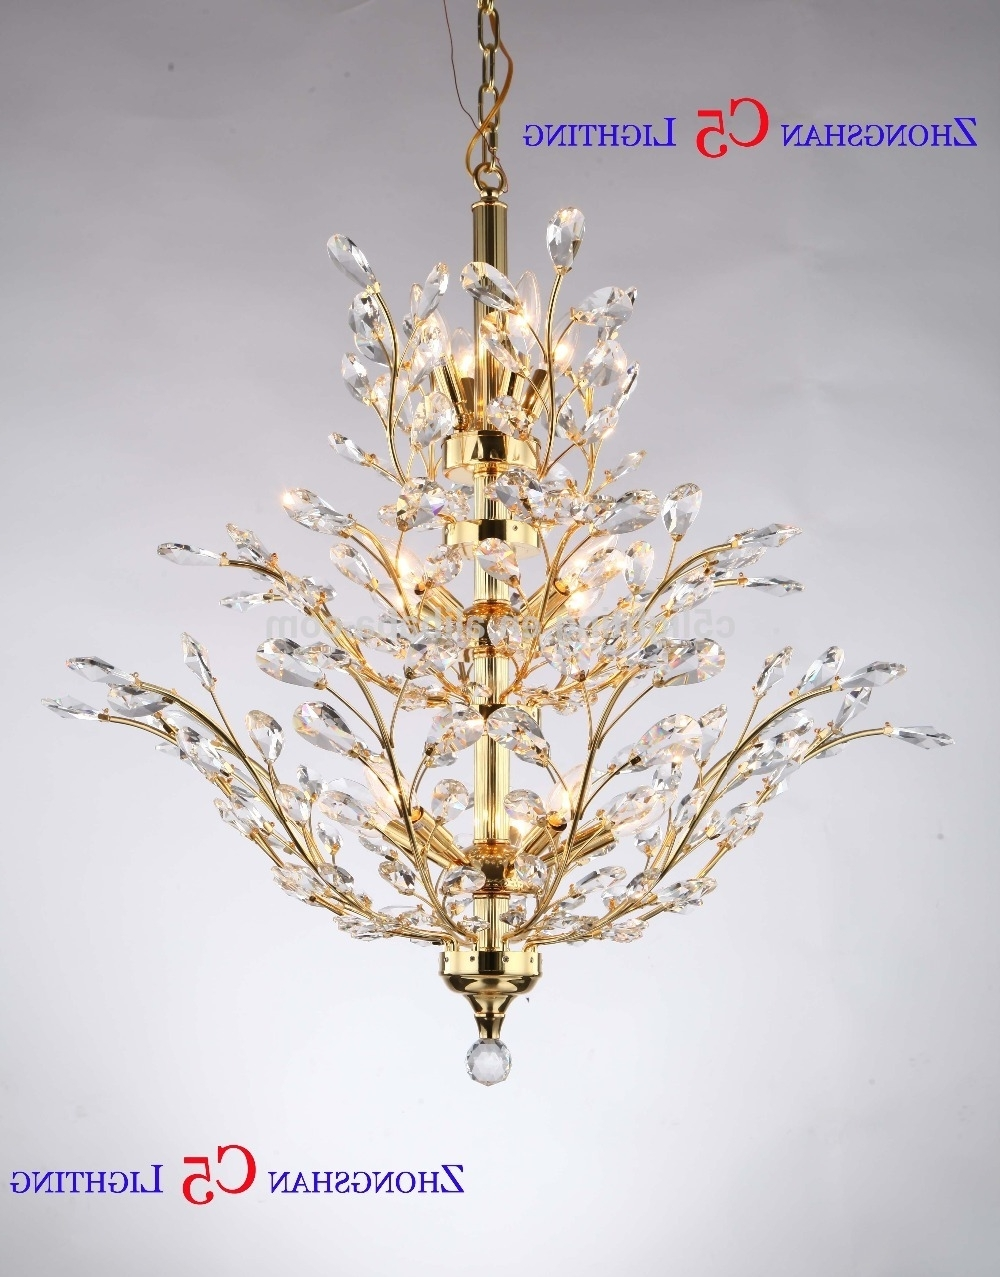 Current Crystal Chandeliers Made In China, Crystal Chandeliers Made In China Inside Chinese Chandeliers (View 7 of 20)